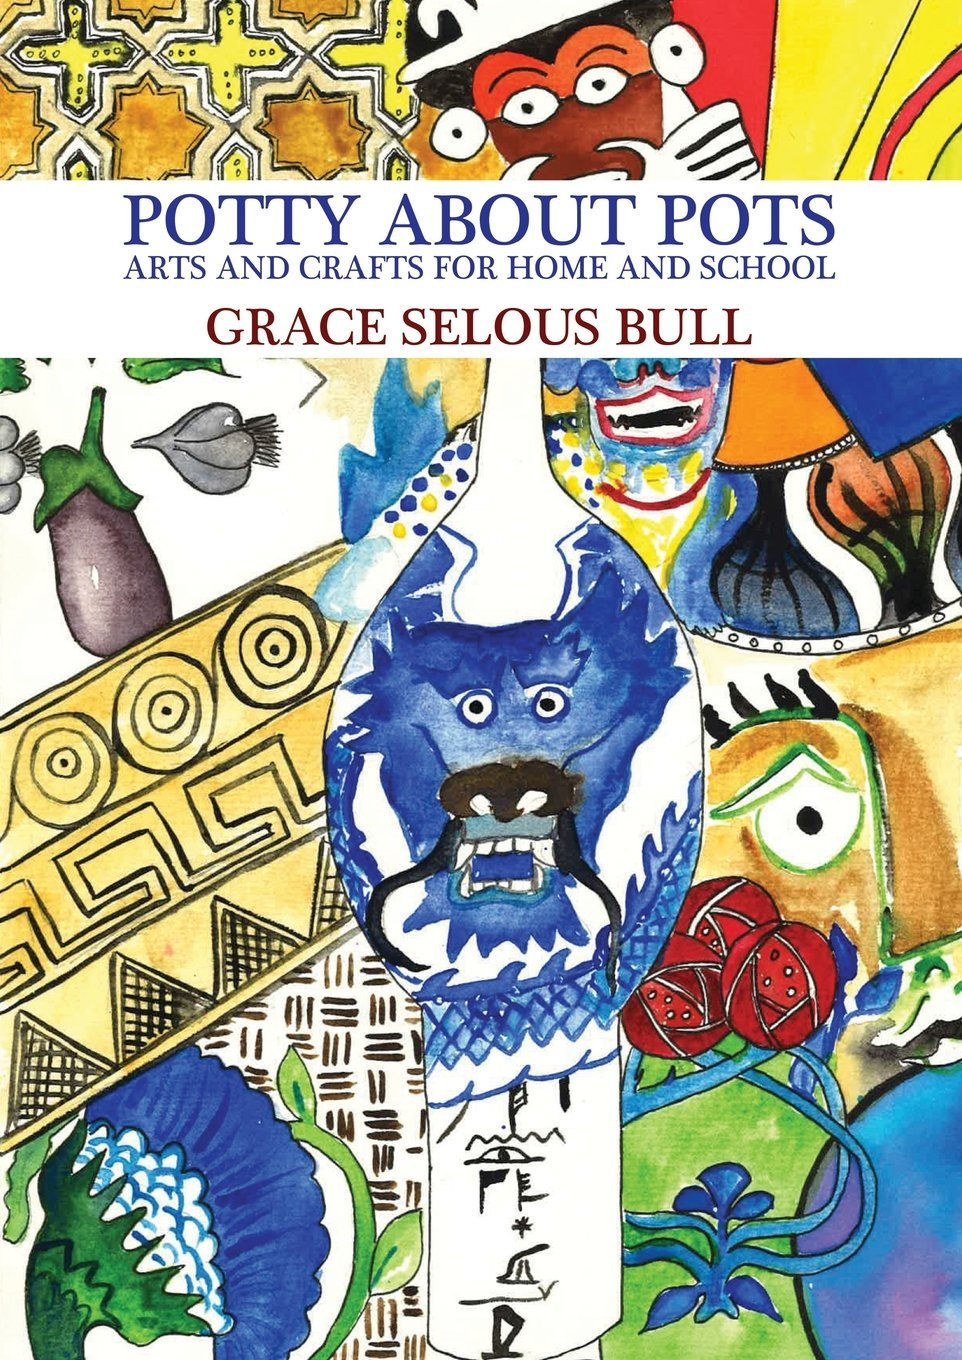 Download Potty About Pots: Arts And Crafts For Home And School PDF